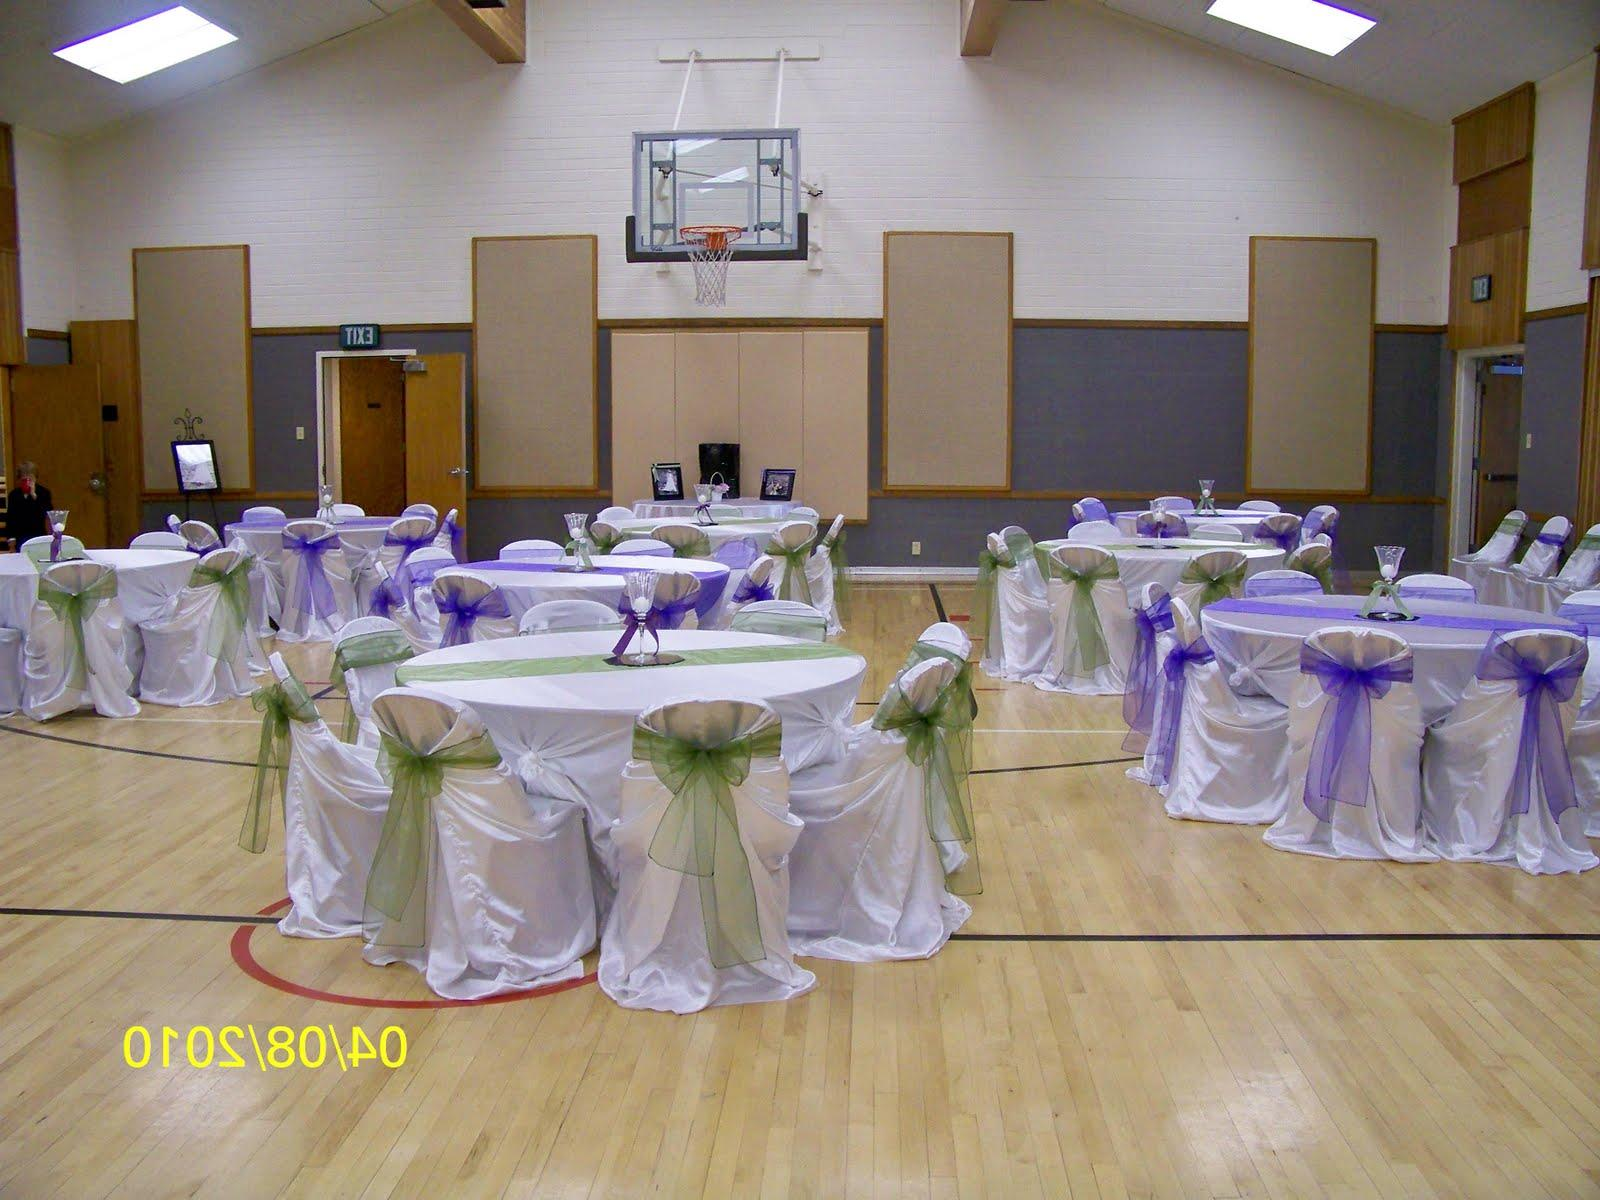 Cheap Prom Table Decorations Picture | Cheap Wedding Decoration Ideas Prom Decorations